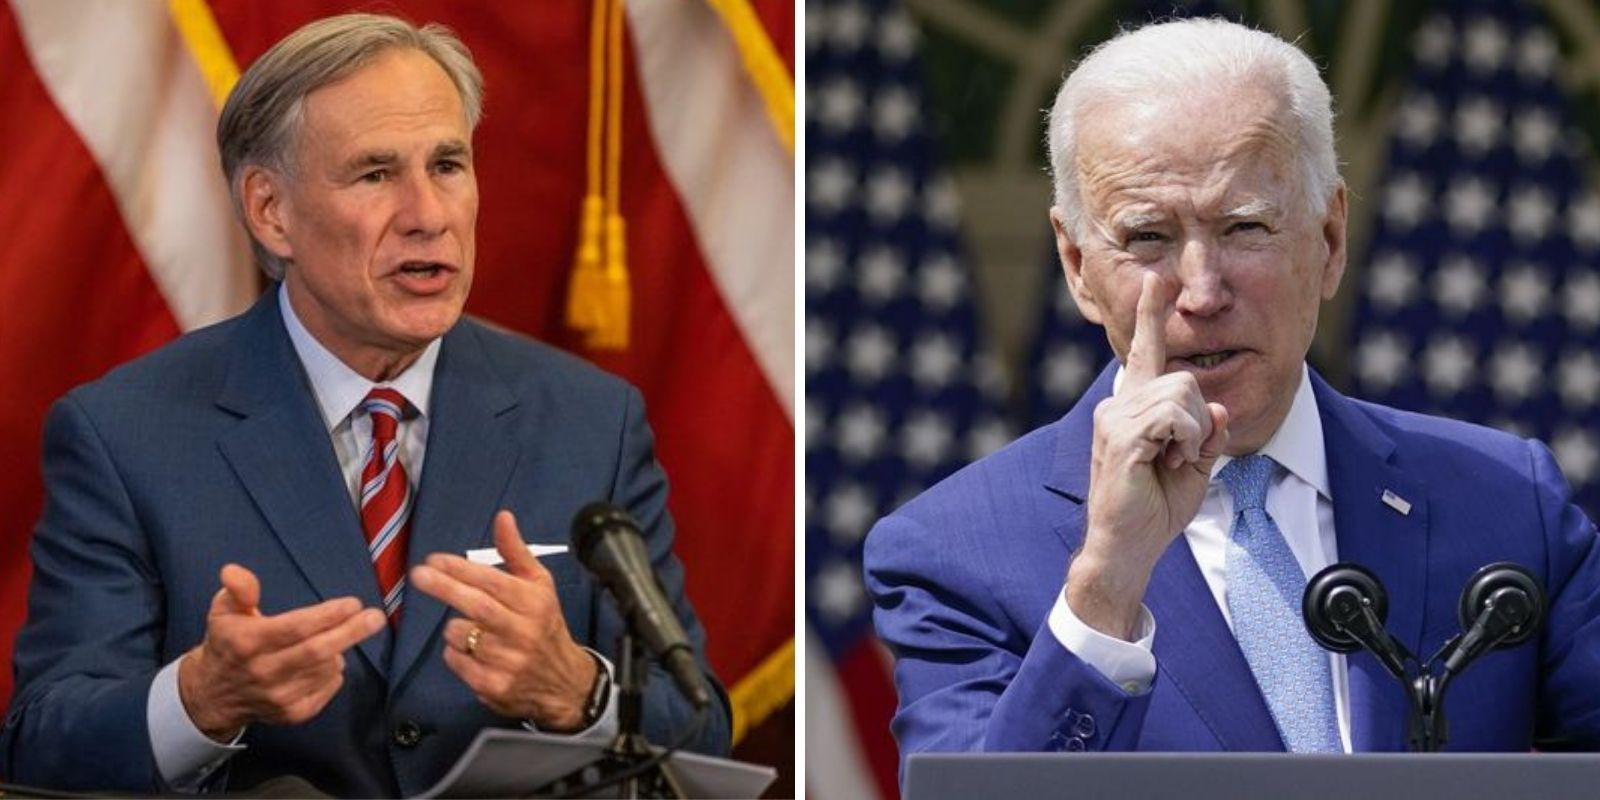 BREAKING: Texas governor declares state of emergency amid ongoing Biden border crisis